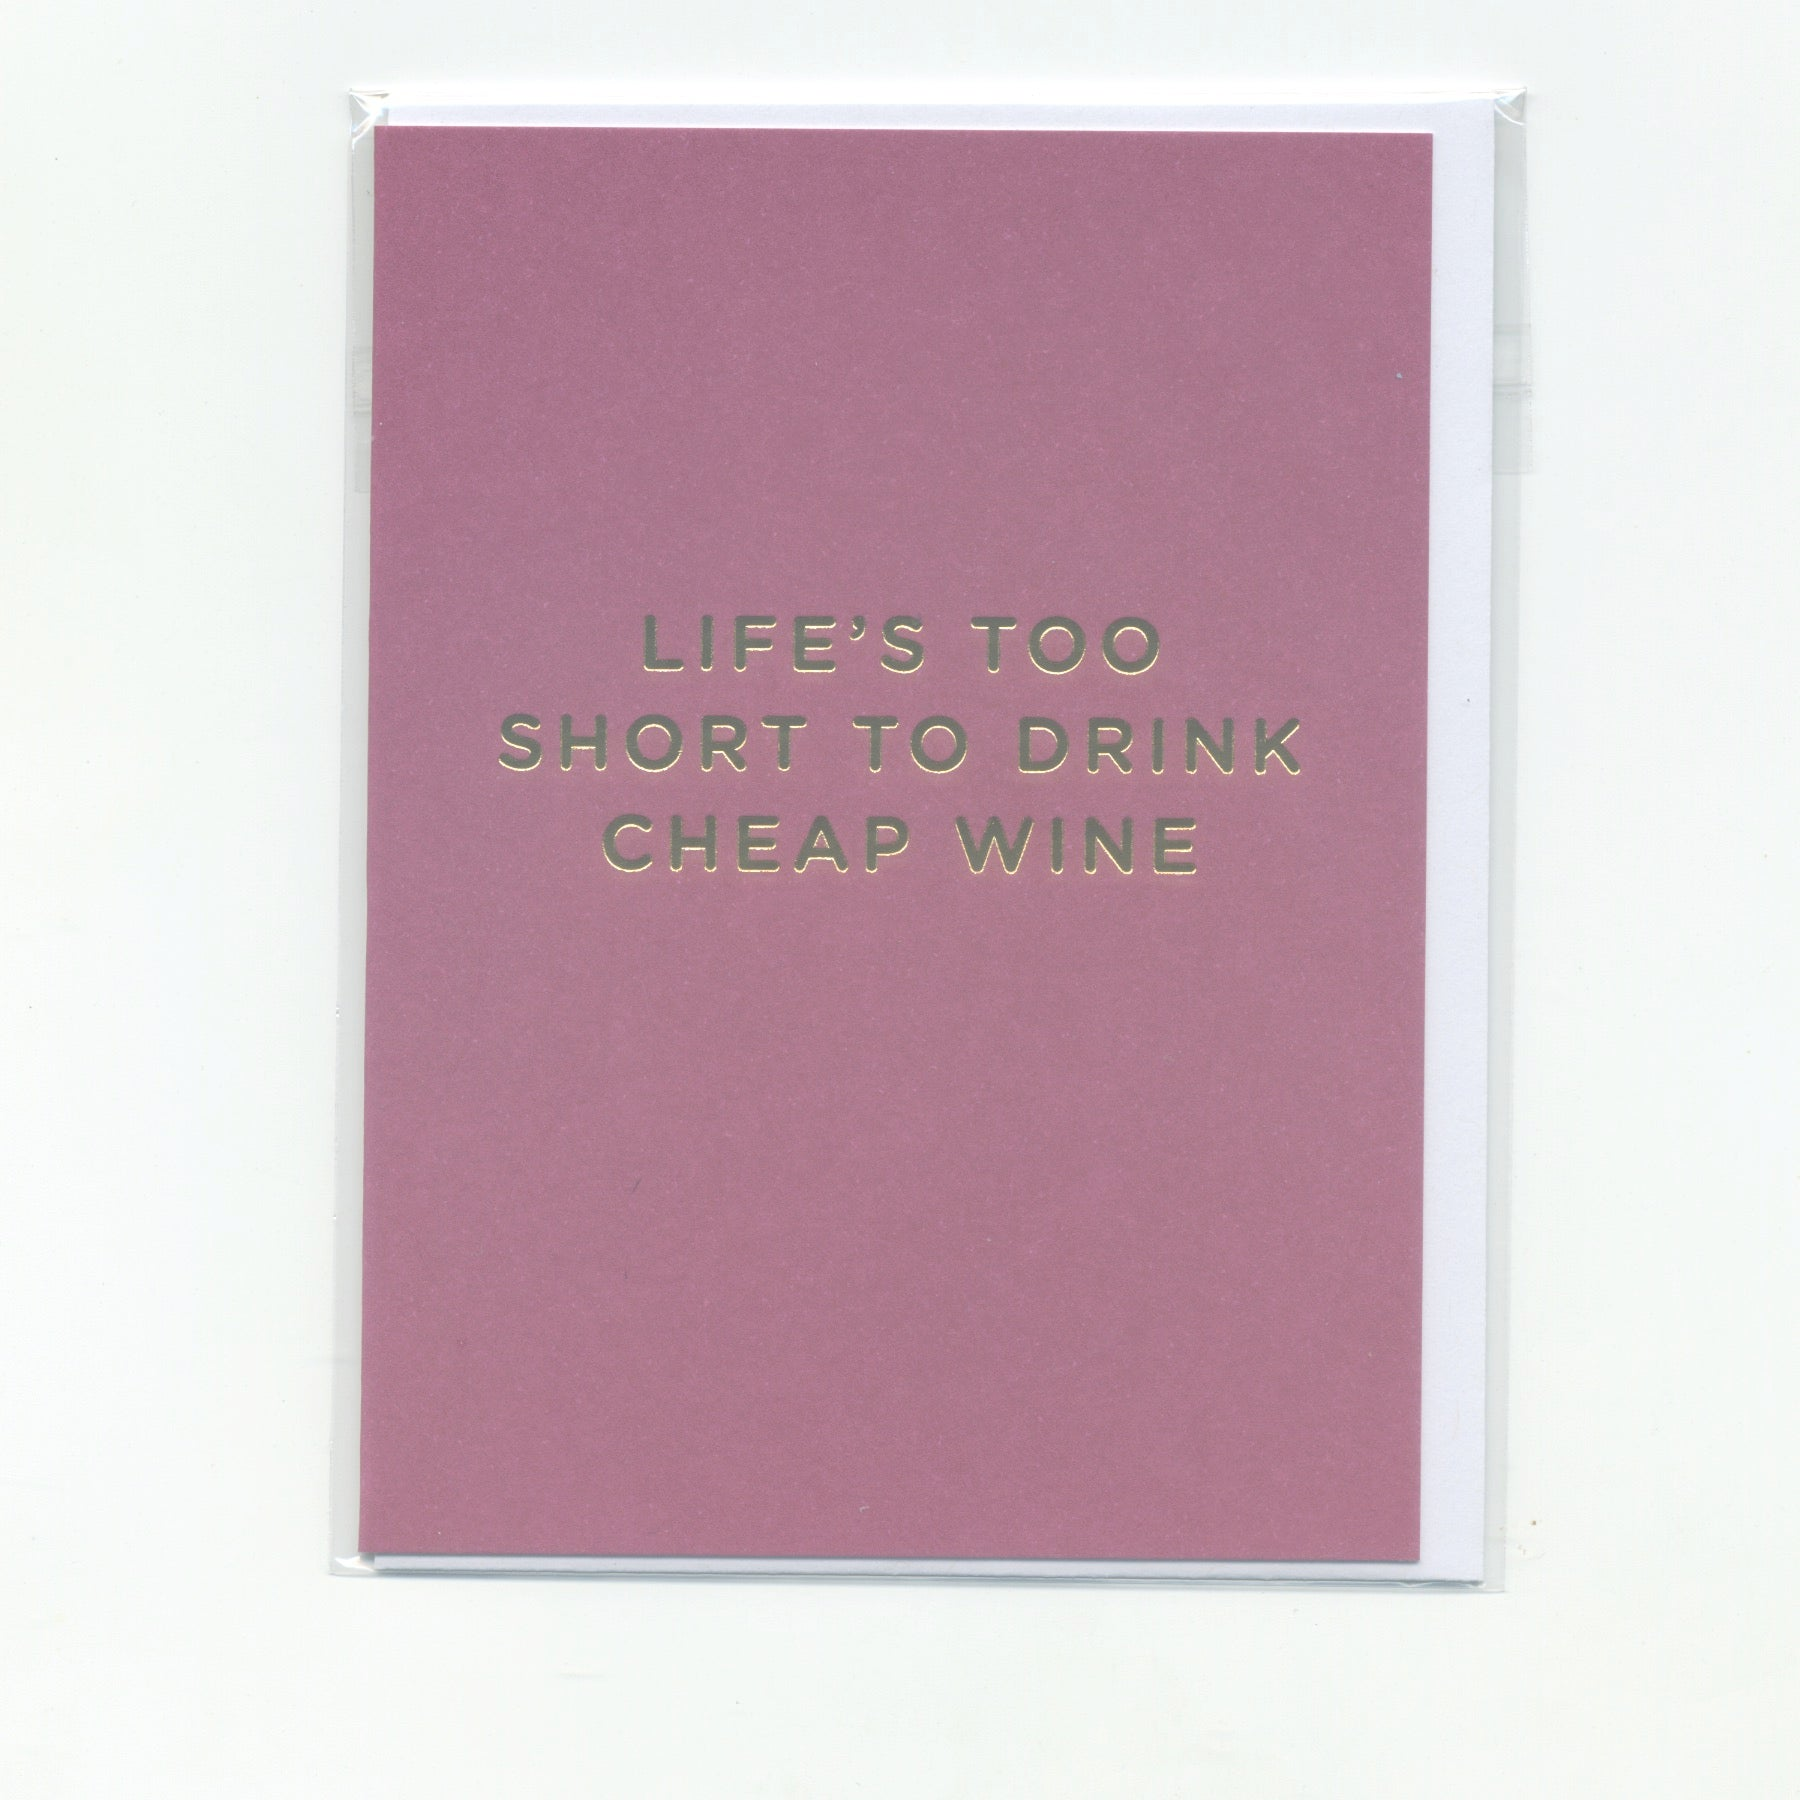 Life's Too Short to Drink Cheap Wine - Mini Card